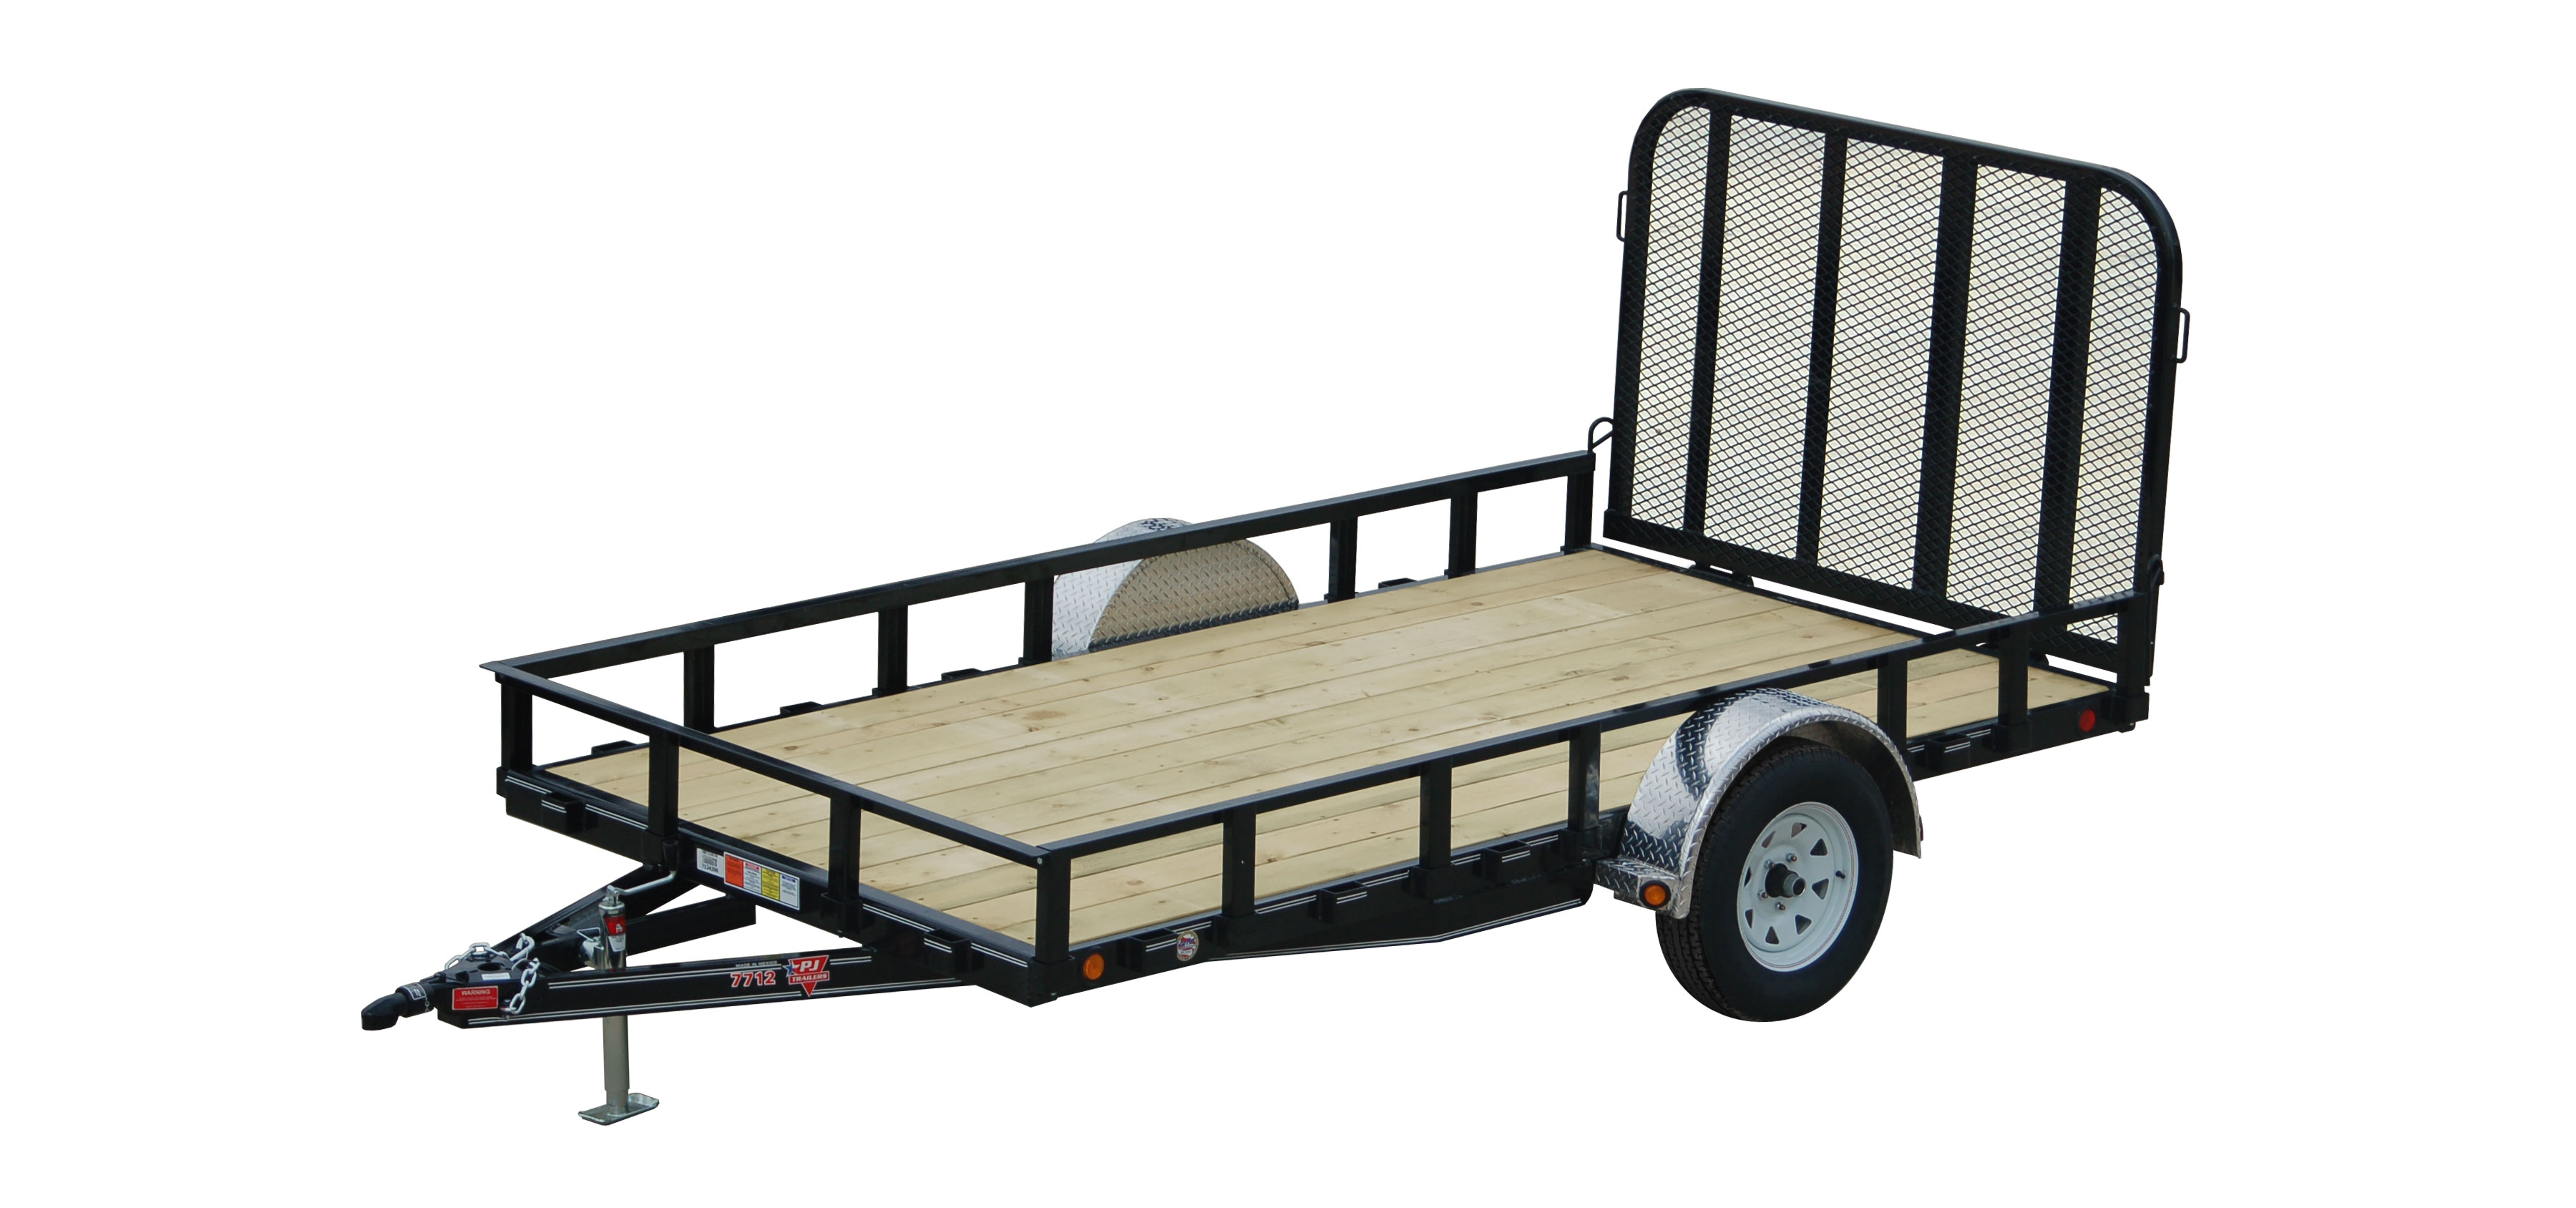 Pj Trailers 77 Channel Utility U7 For Sale In South Londonderry Triton 4 Flat Trailer Wiring Diagram Call Price